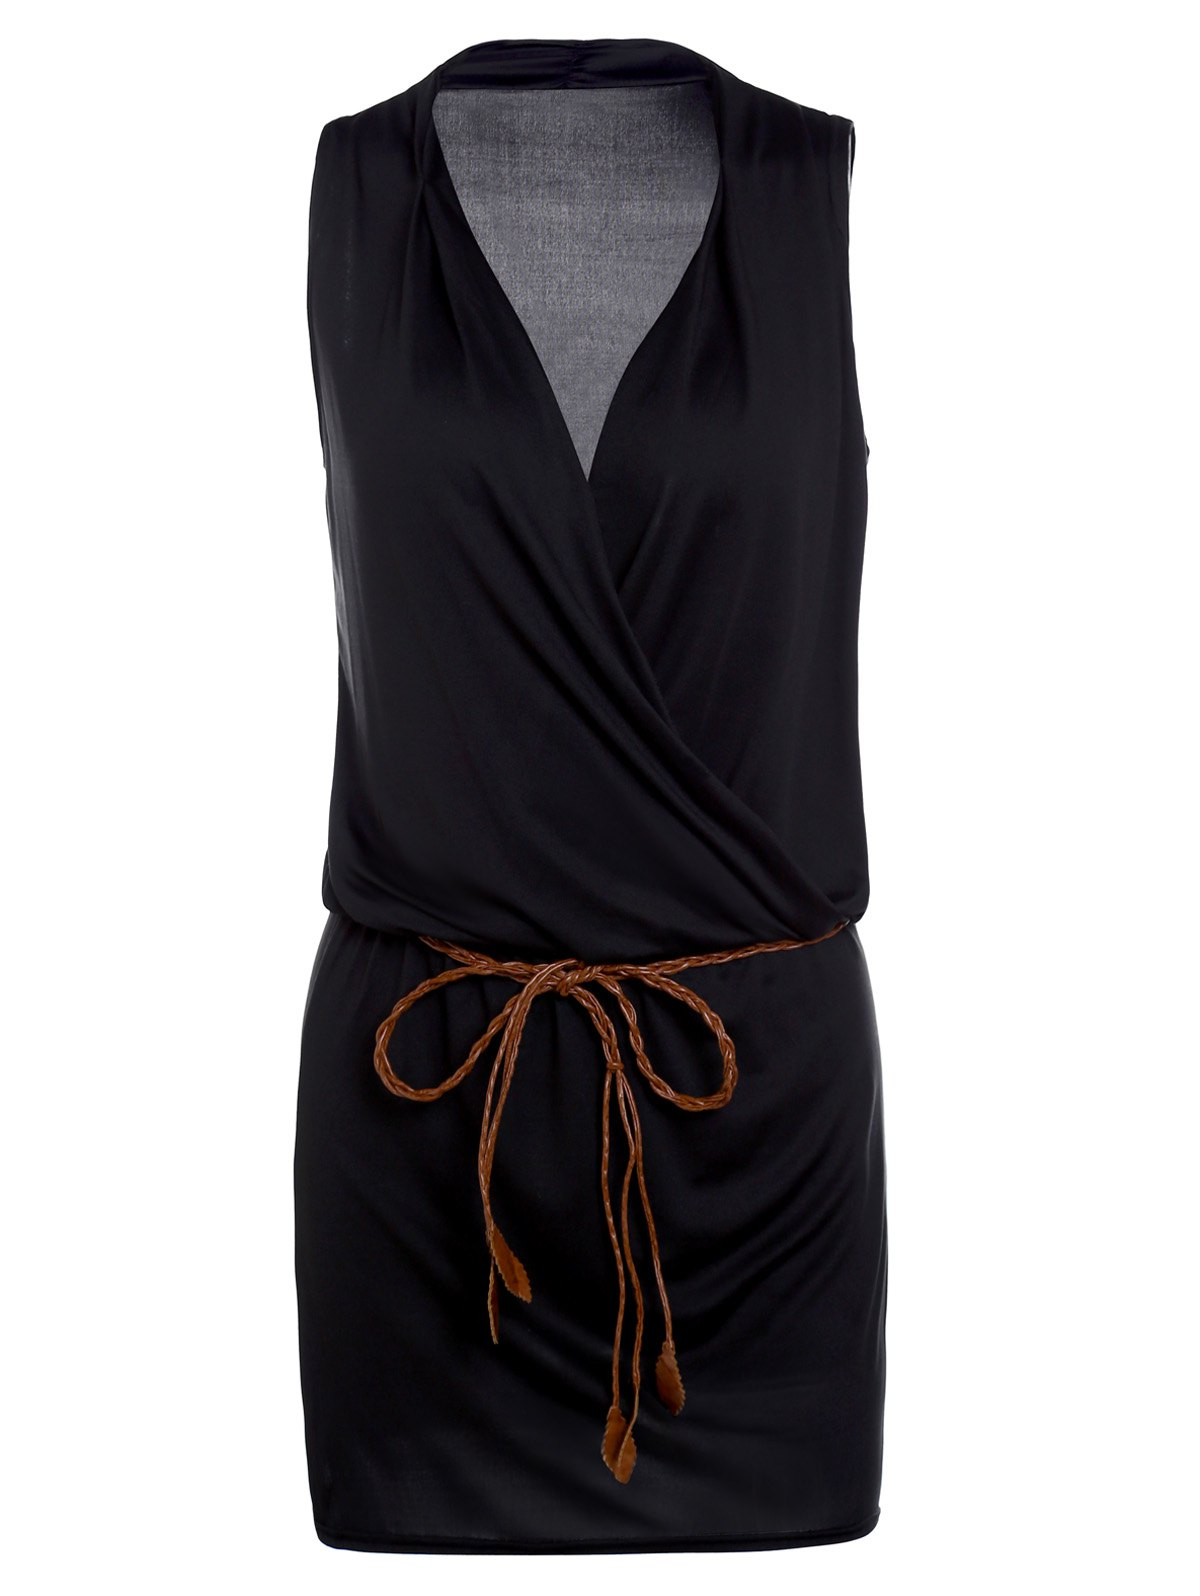 Casual Women's Plunging Neck Black Sleeveless Dress - BLACK S